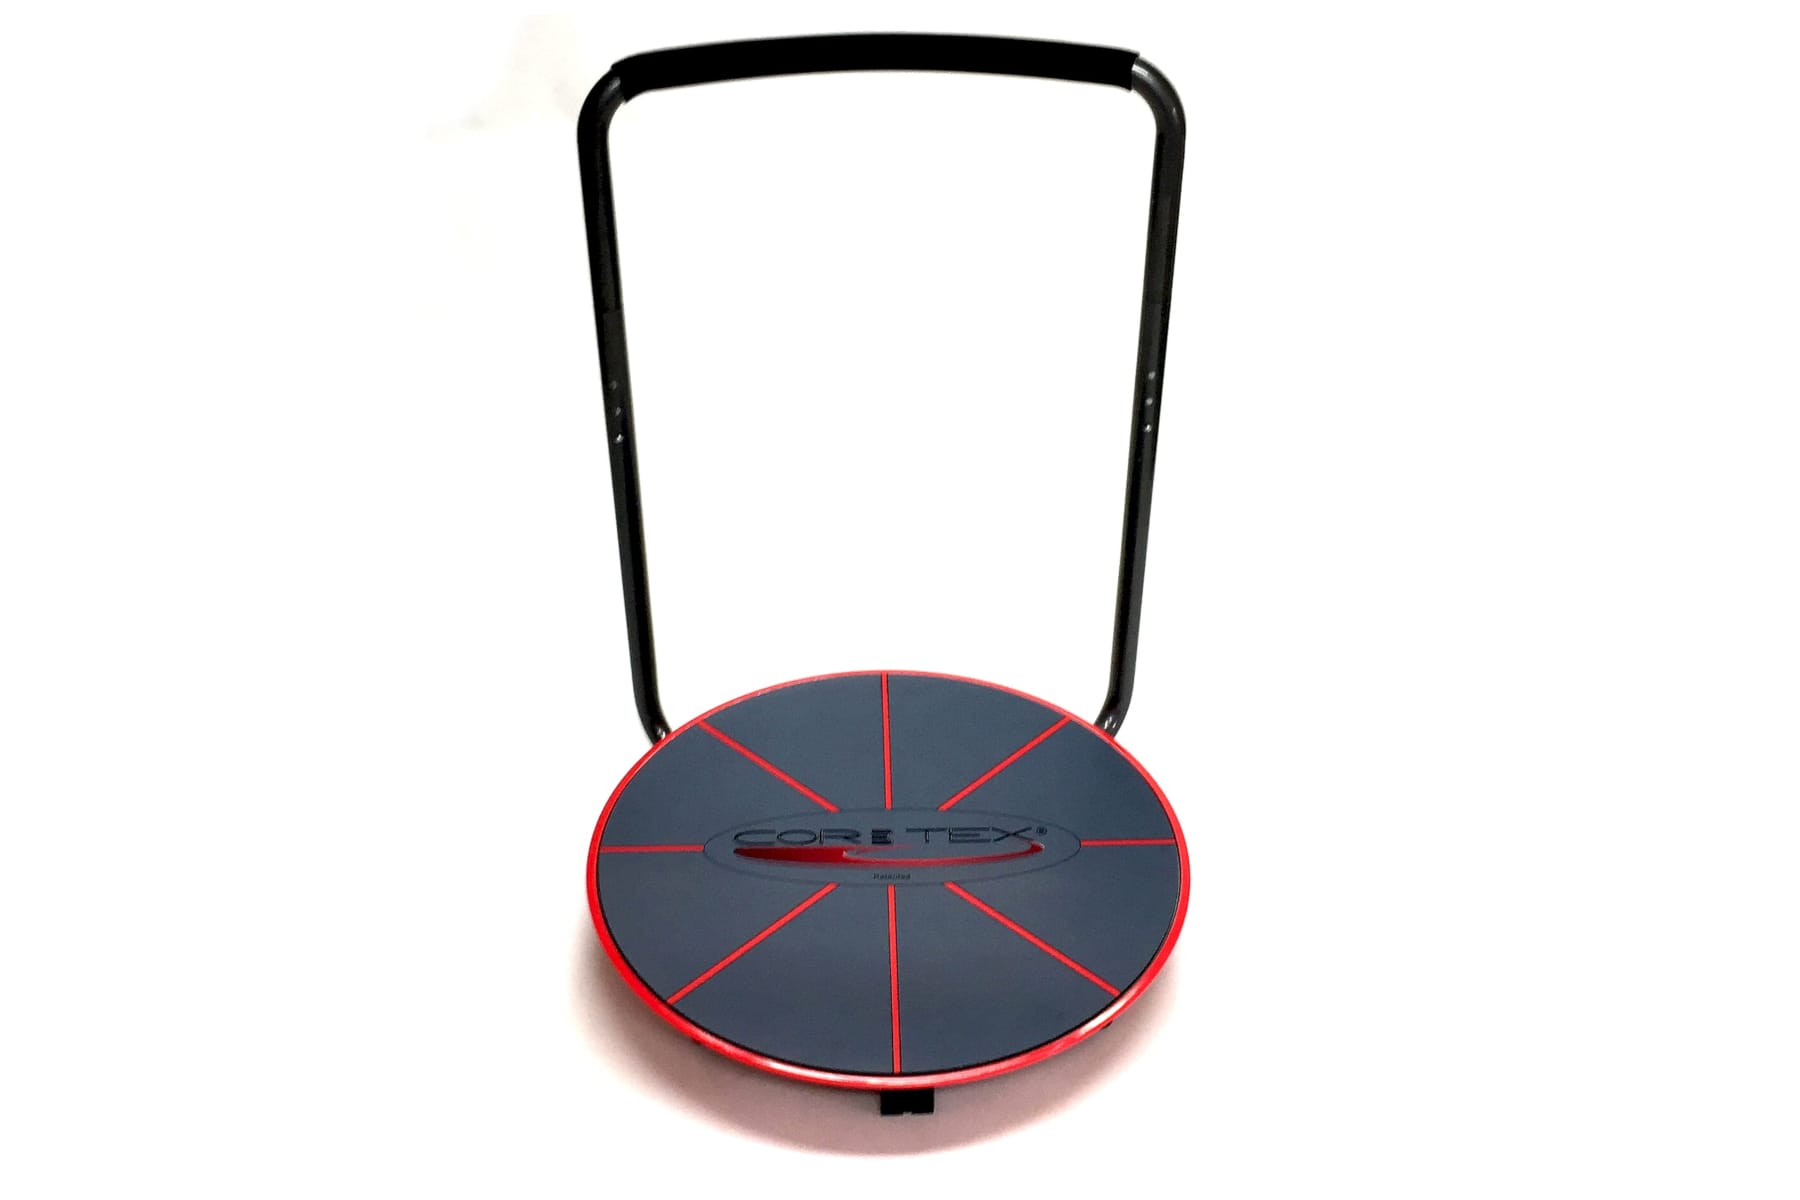 Red and black Core-Tex Reactive Trainer with single handrail